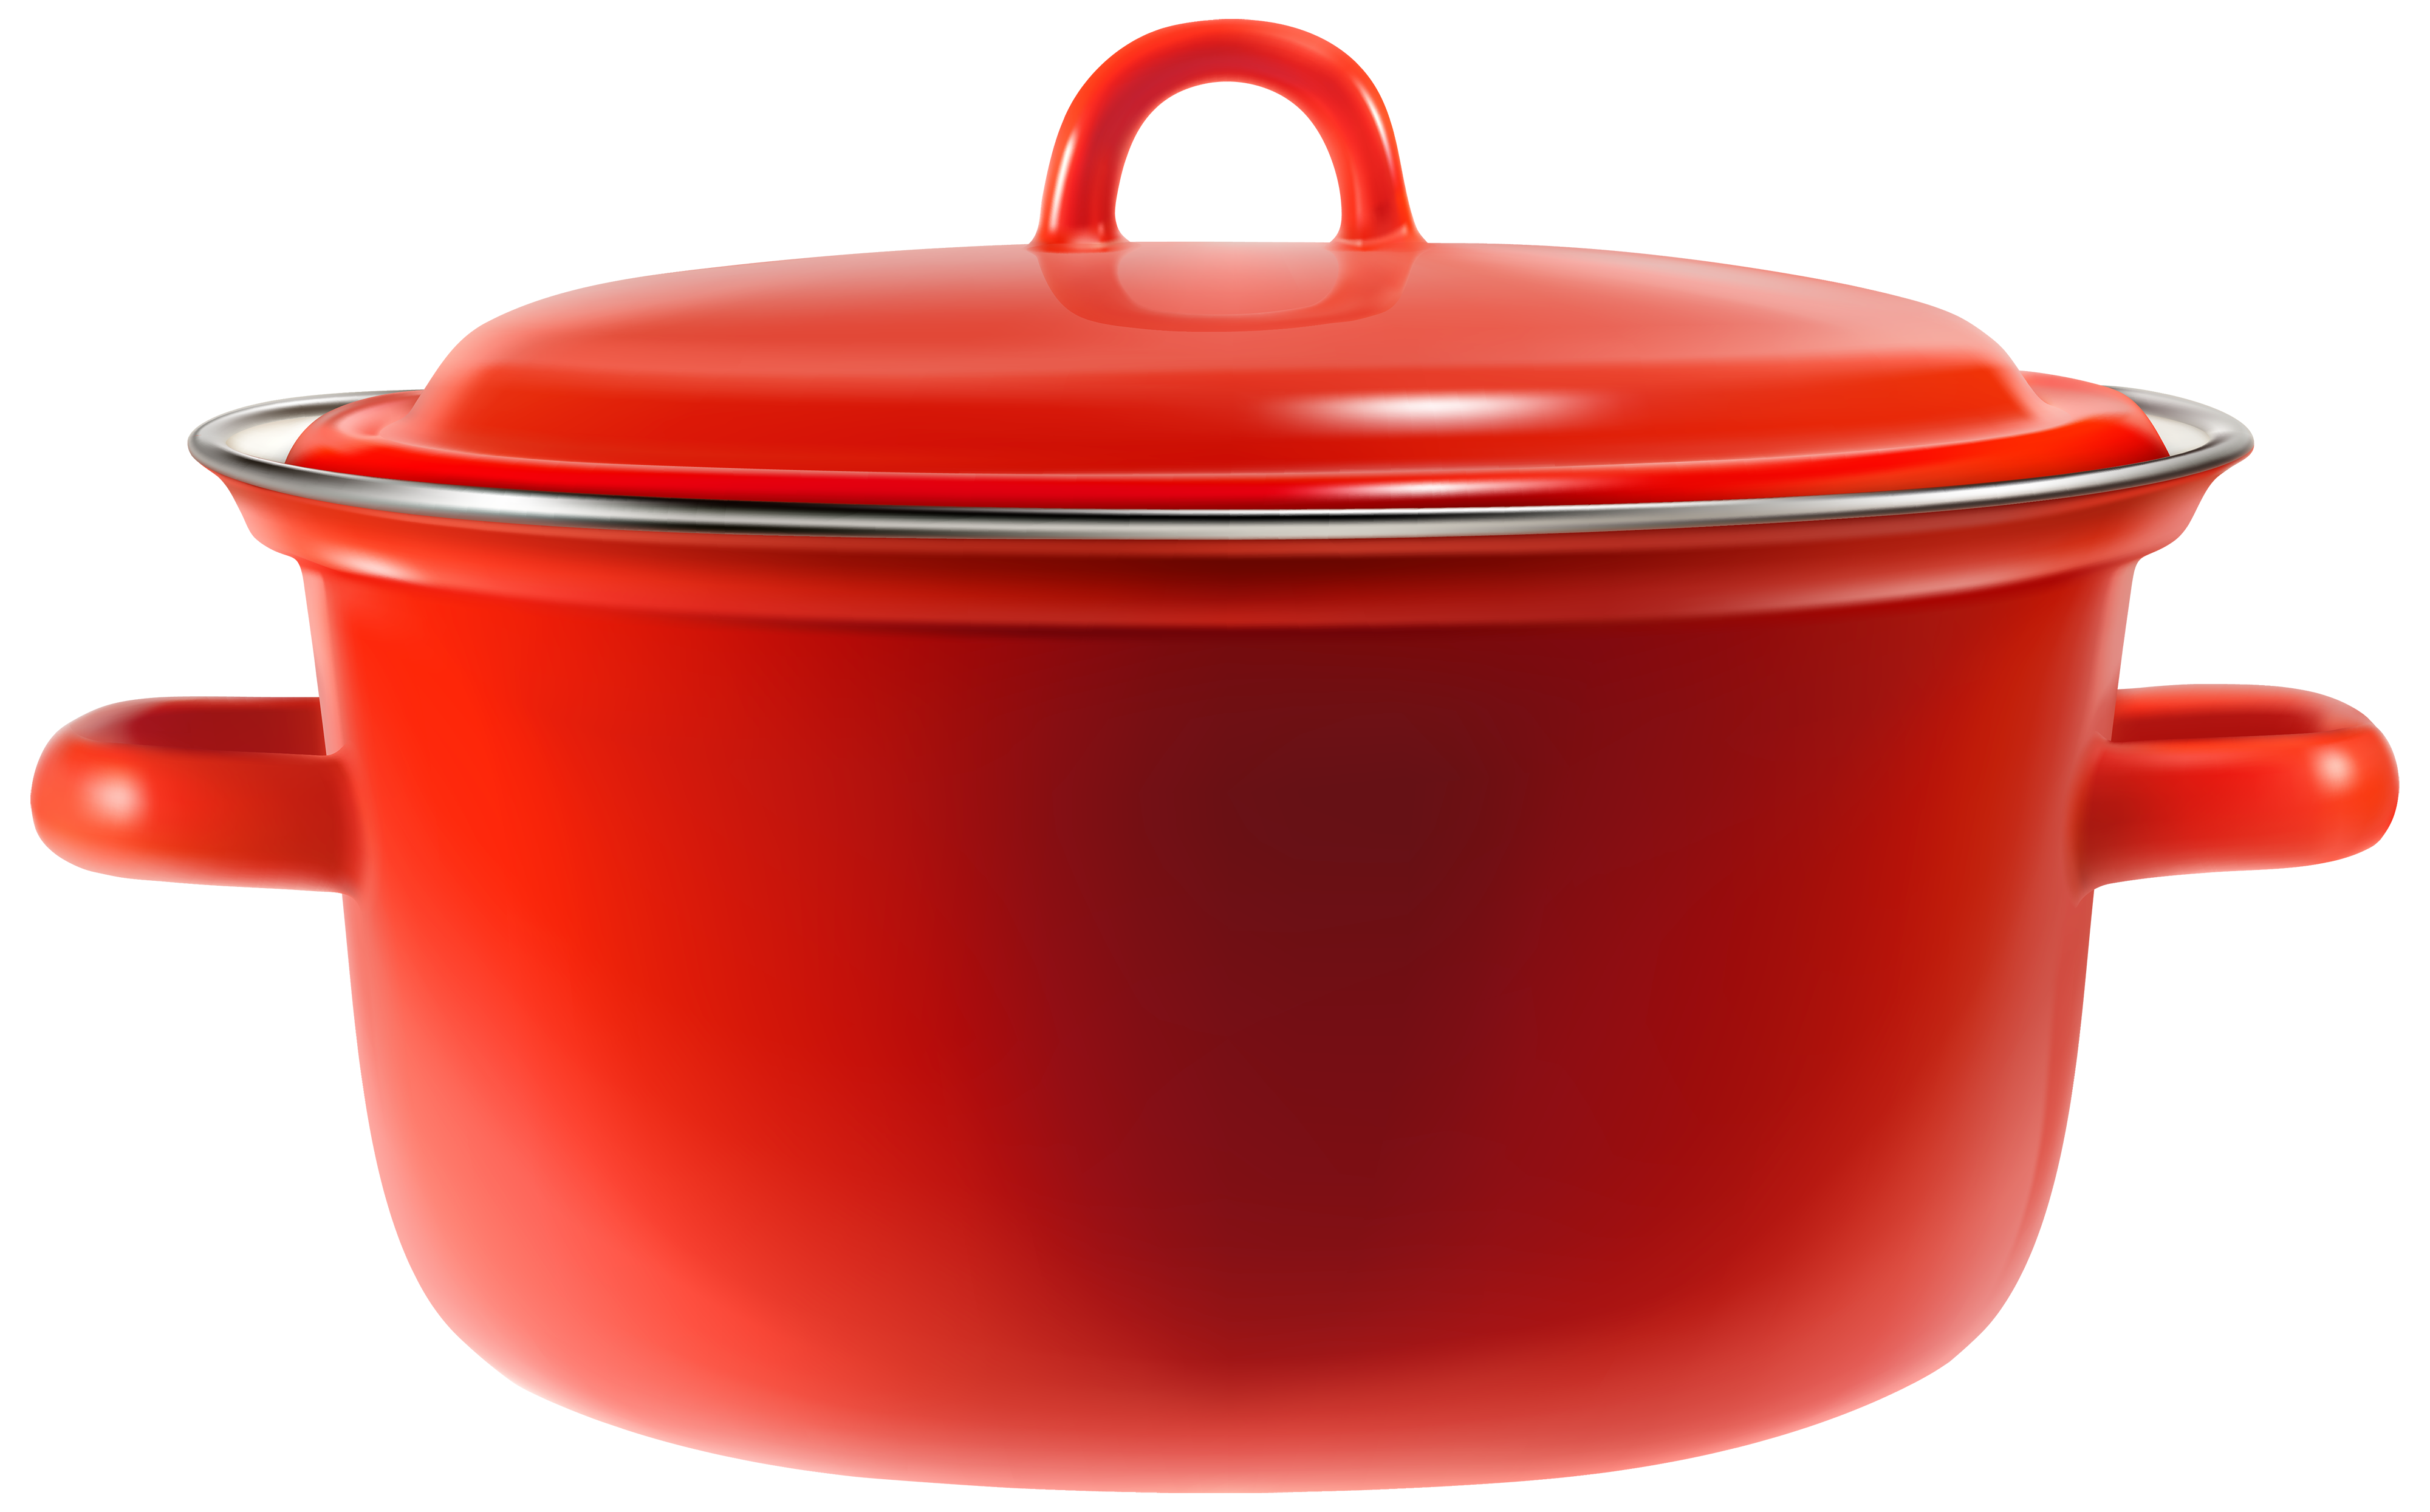 Red pot best web. Cookie clipart cooking